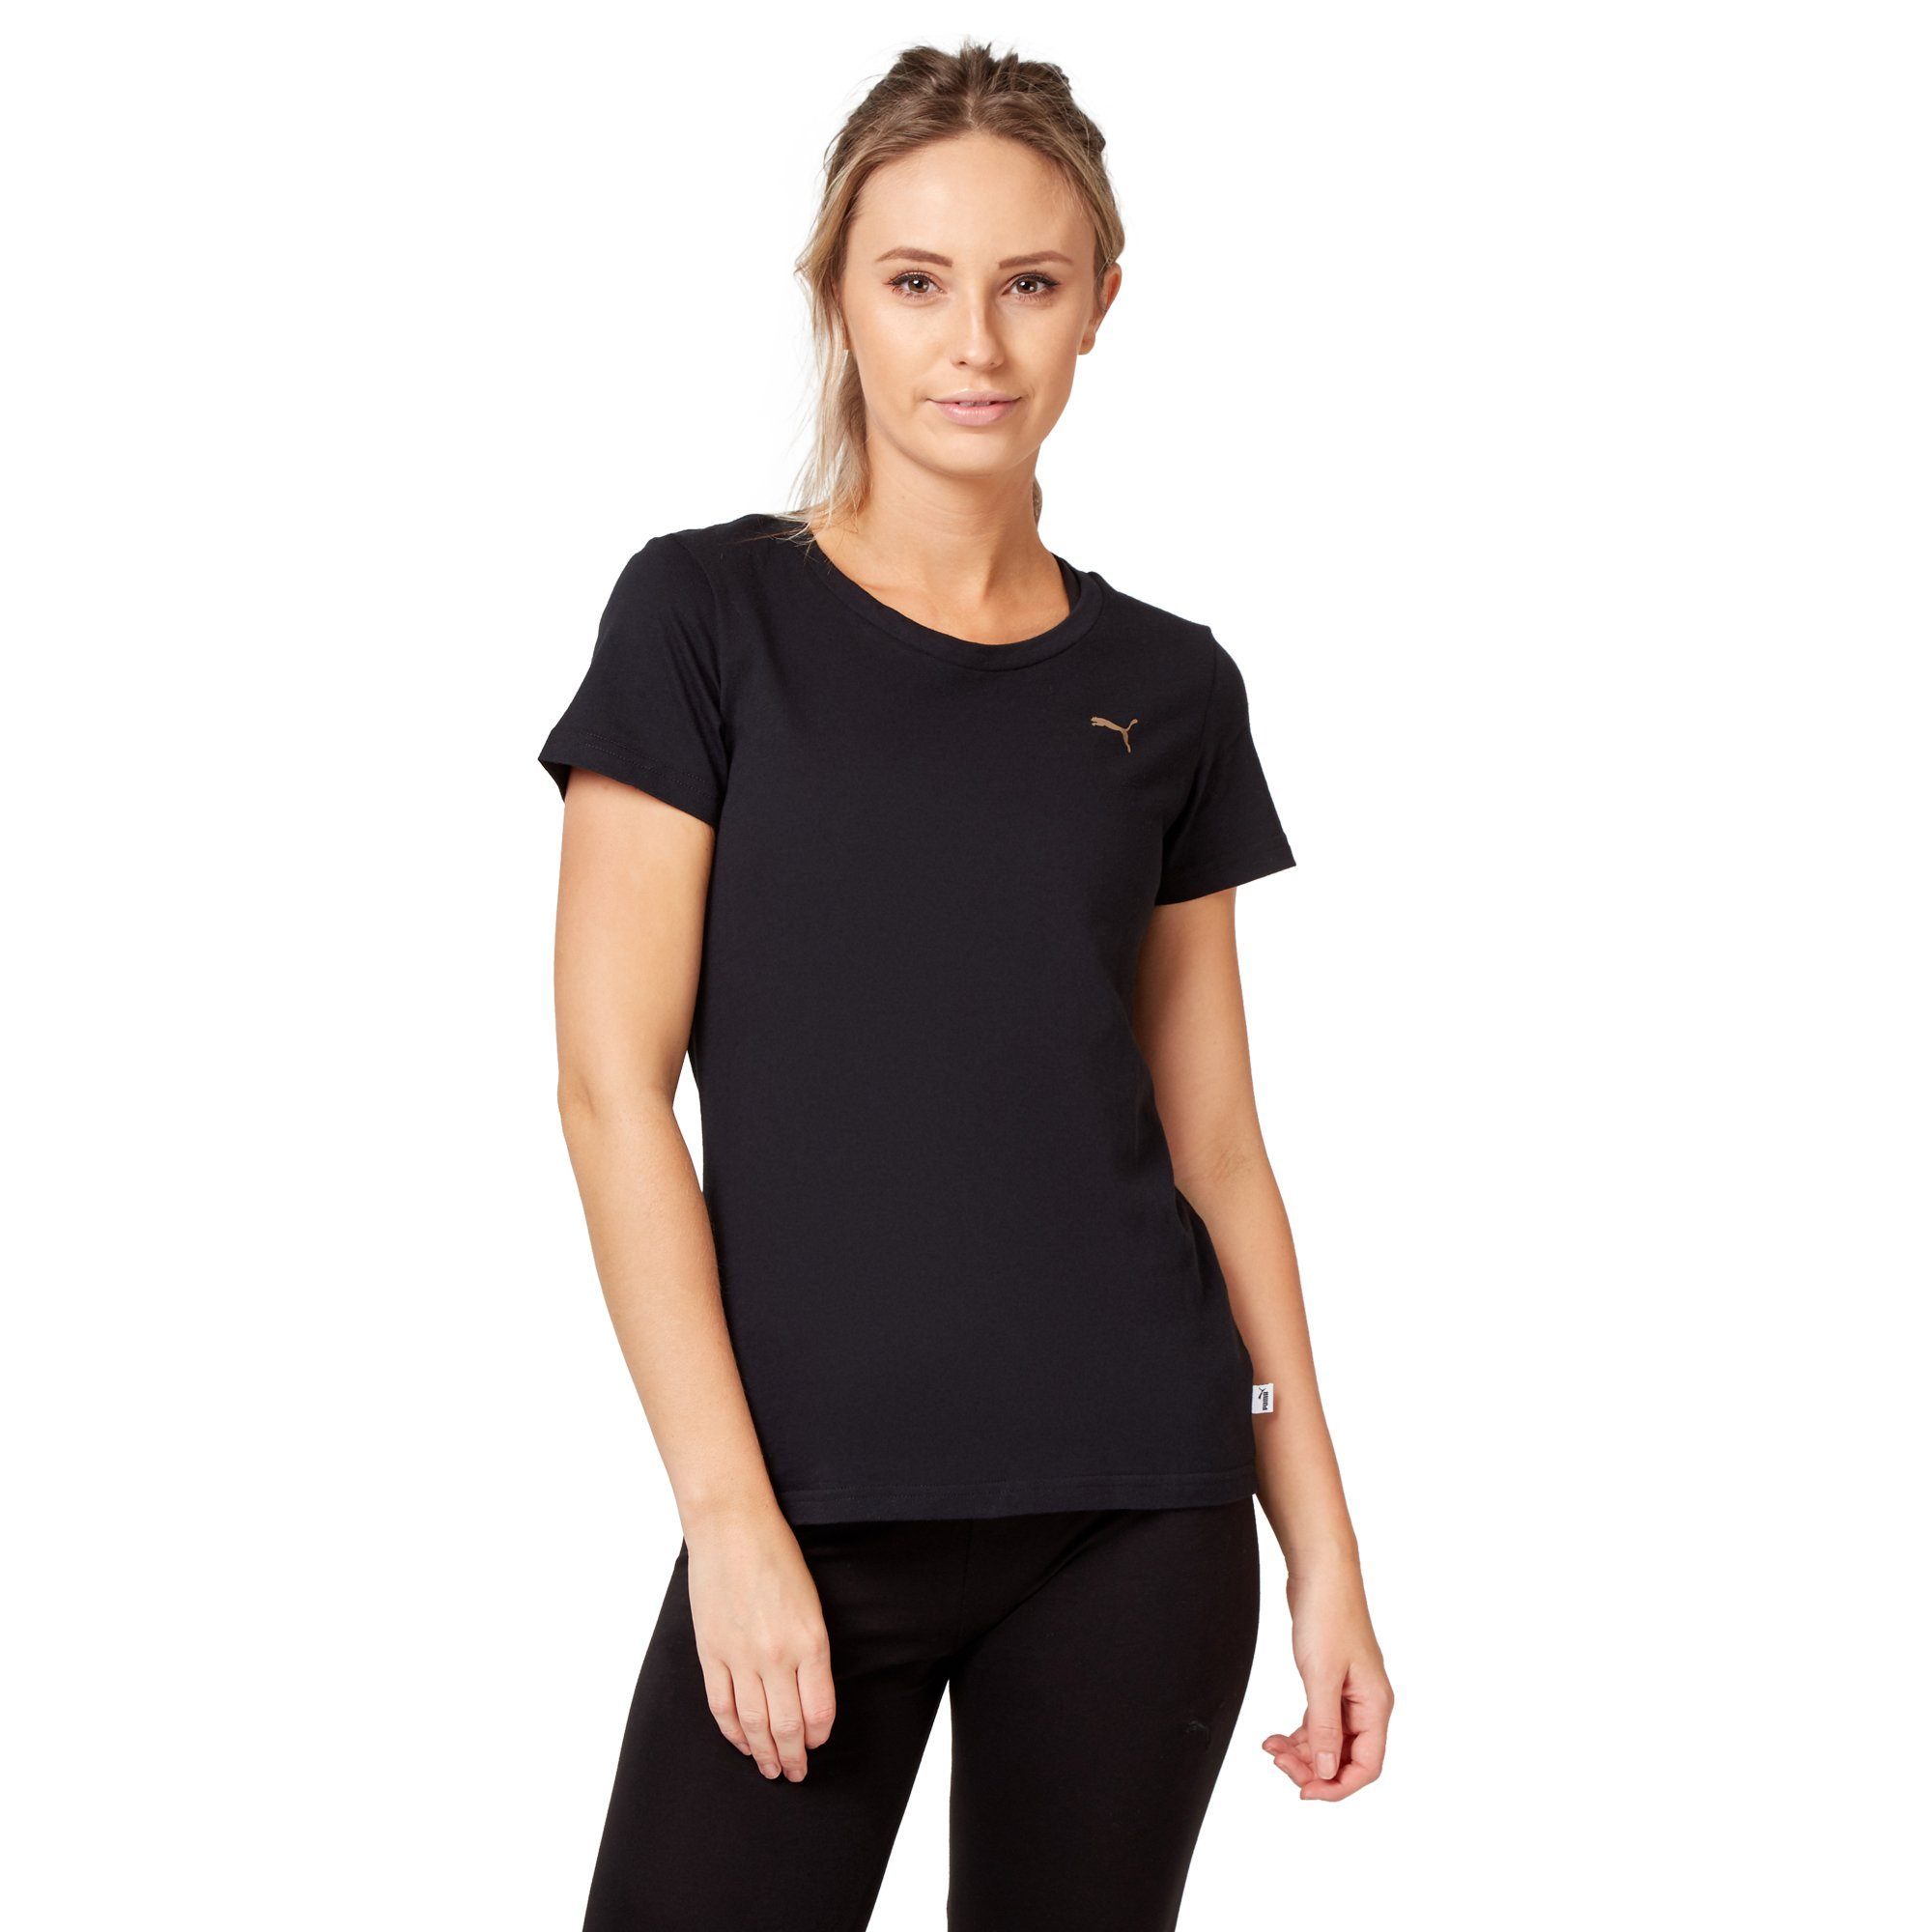 Puma Women's Athletic Tee - Black Apparel Puma  (2122609360955)